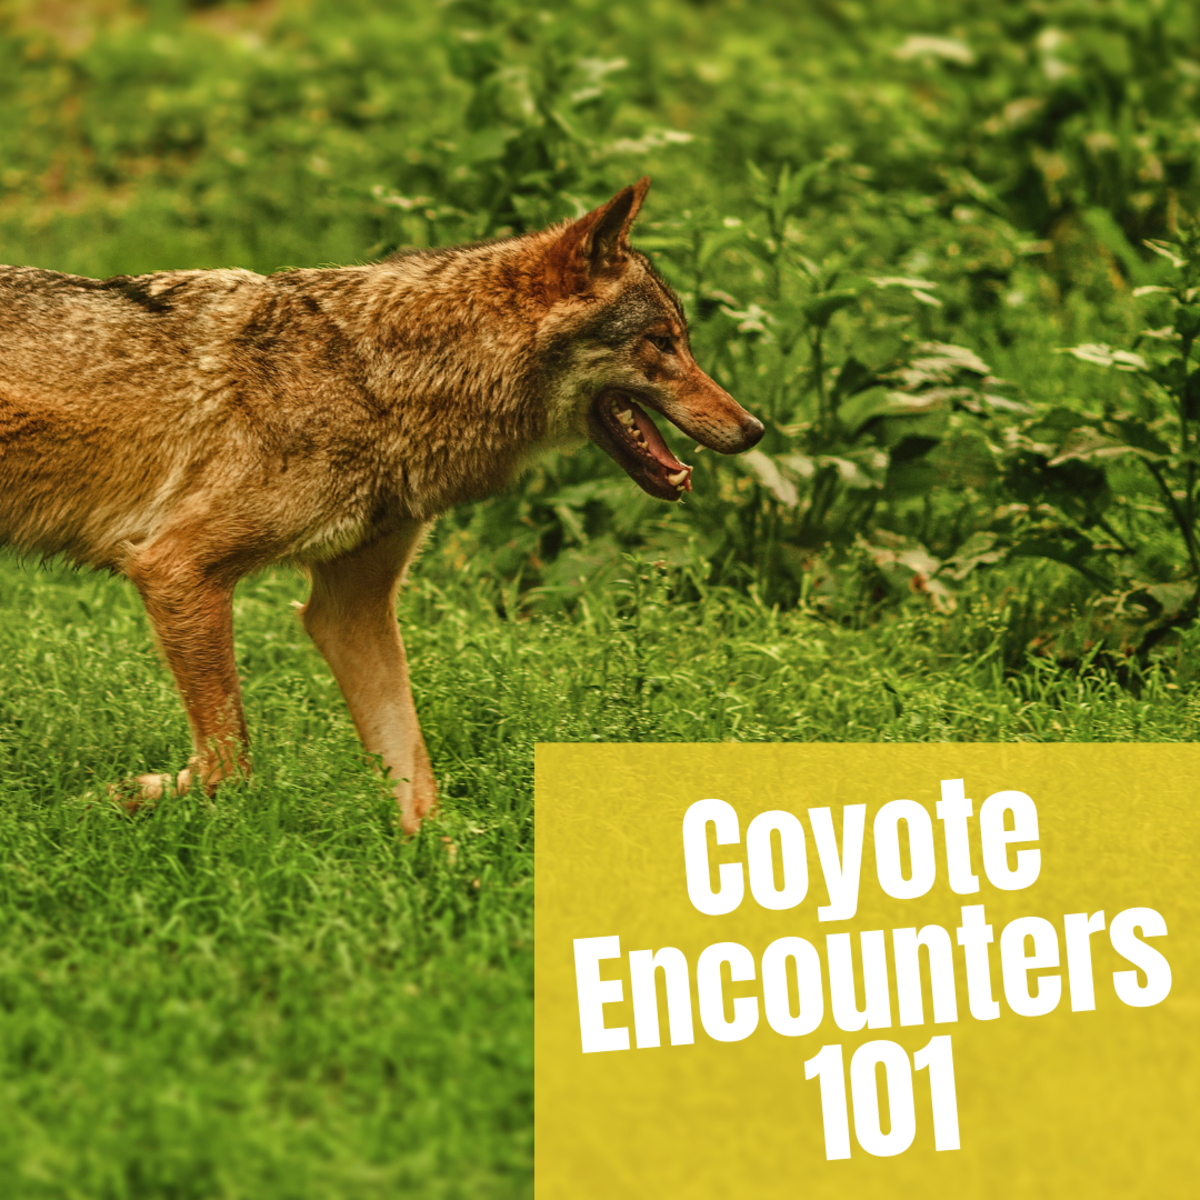 Safety Tips: What to Do If You See or Encounter a Coyote